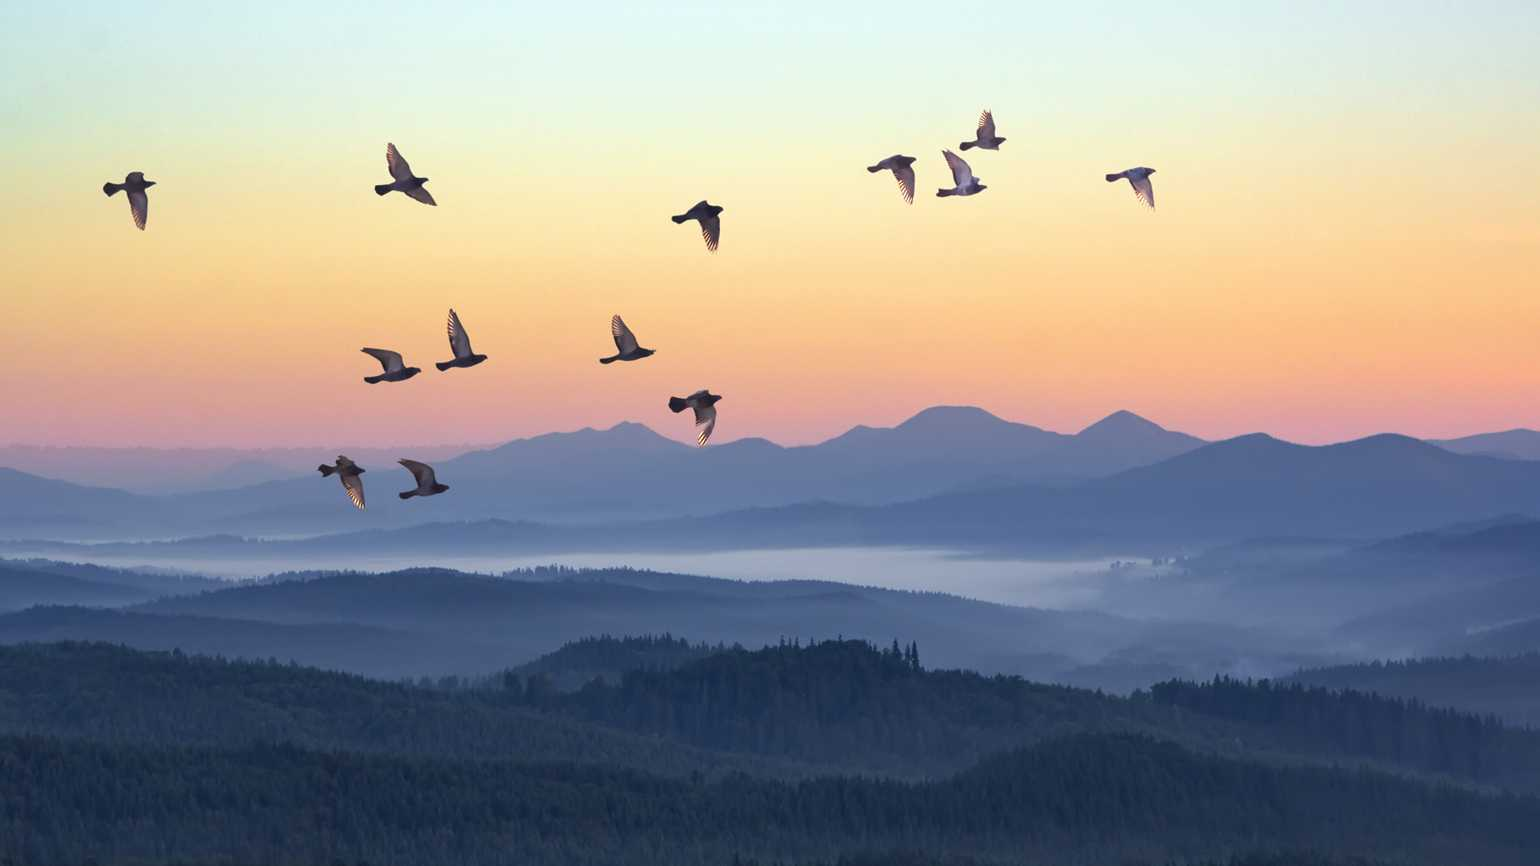 A flock of birds in flight during a sunset.